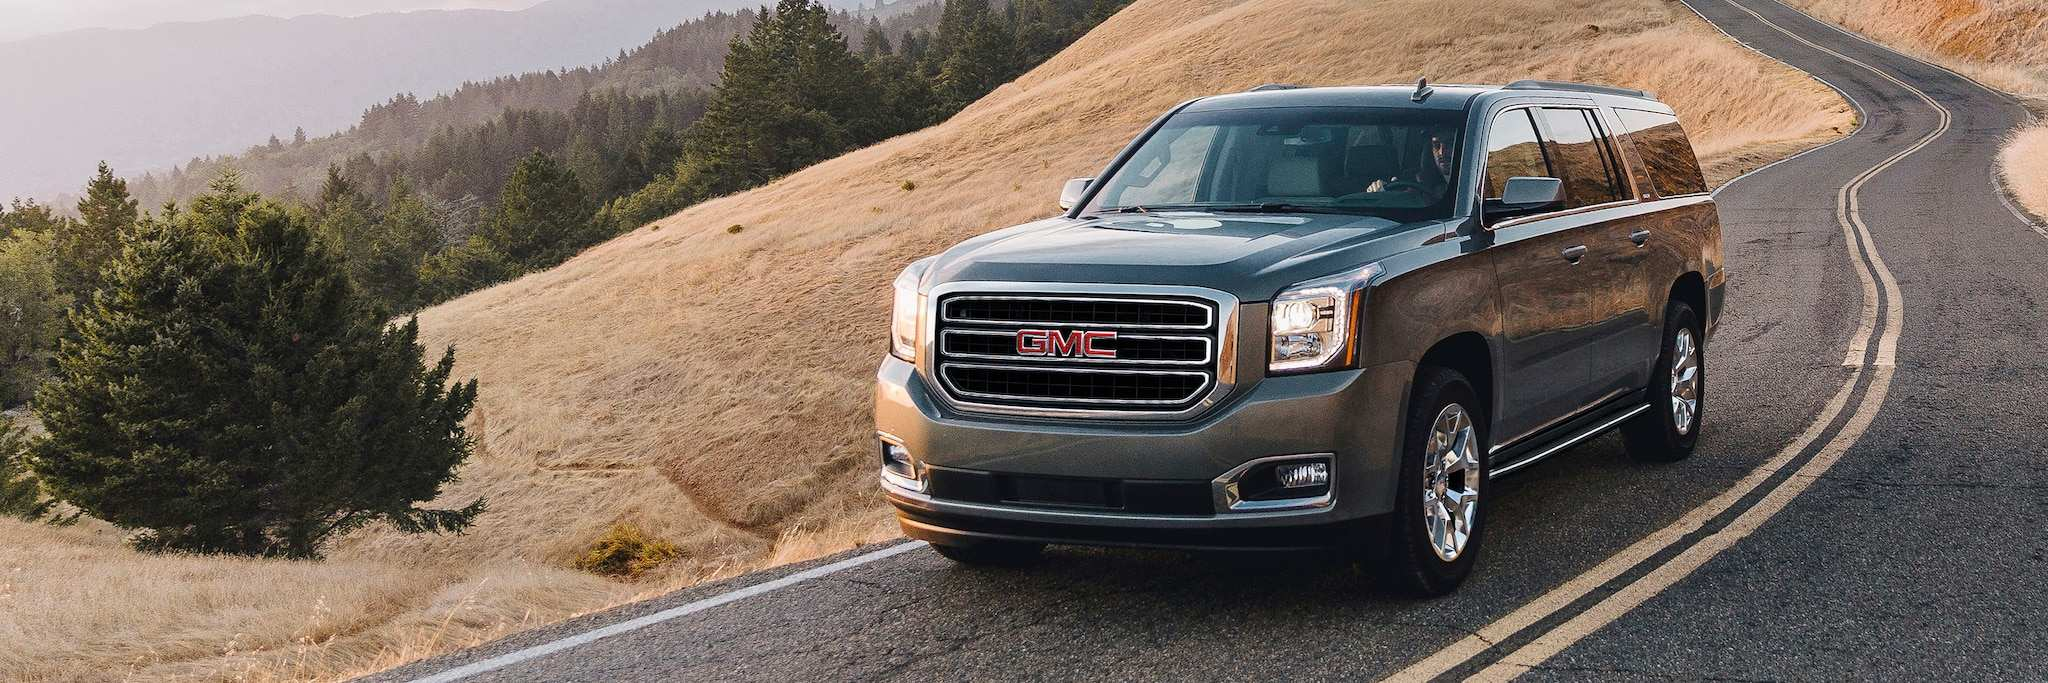 80 Gallery of New Gmc Yukon Design 2020 2 Prices with New Gmc Yukon Design 2020 2